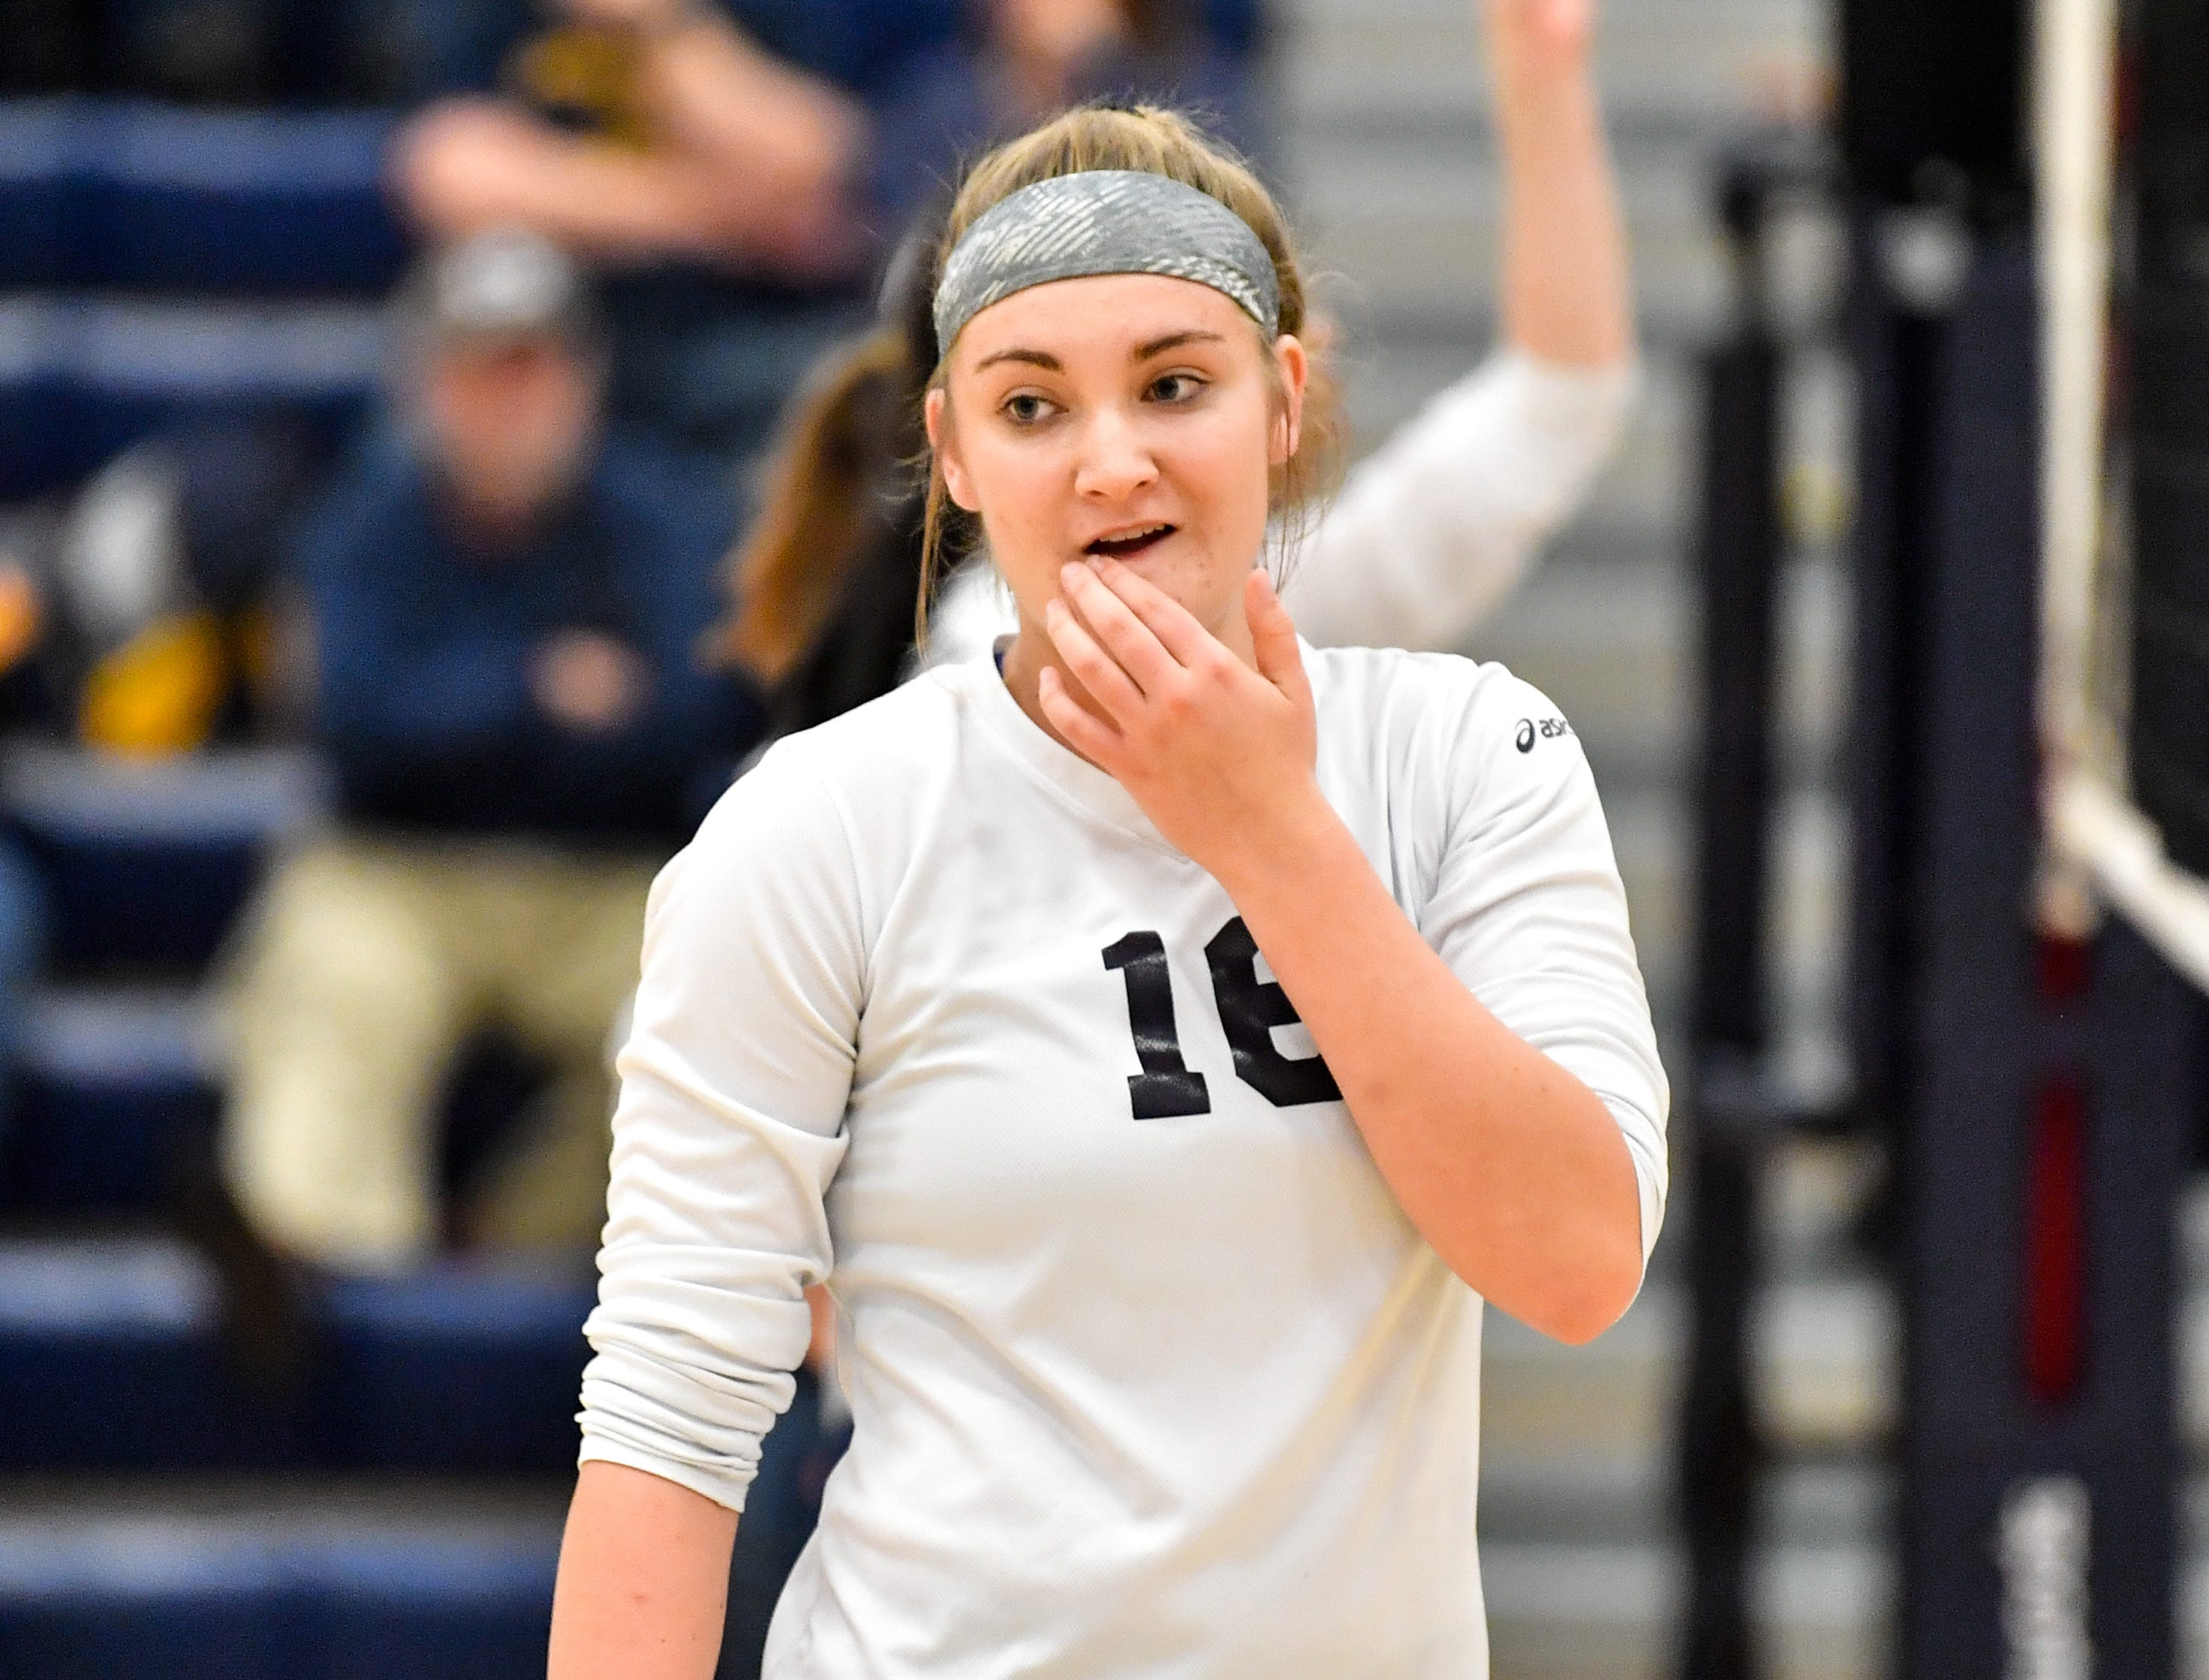 Georgianna Kahley (16) listens to her coach during the District 3 Class 3A girls' volleyball quarterfinals between West York and Eastern York at West York High School, October 30, 2018. The Bulldogs defeated the Golden Knights 3-0.